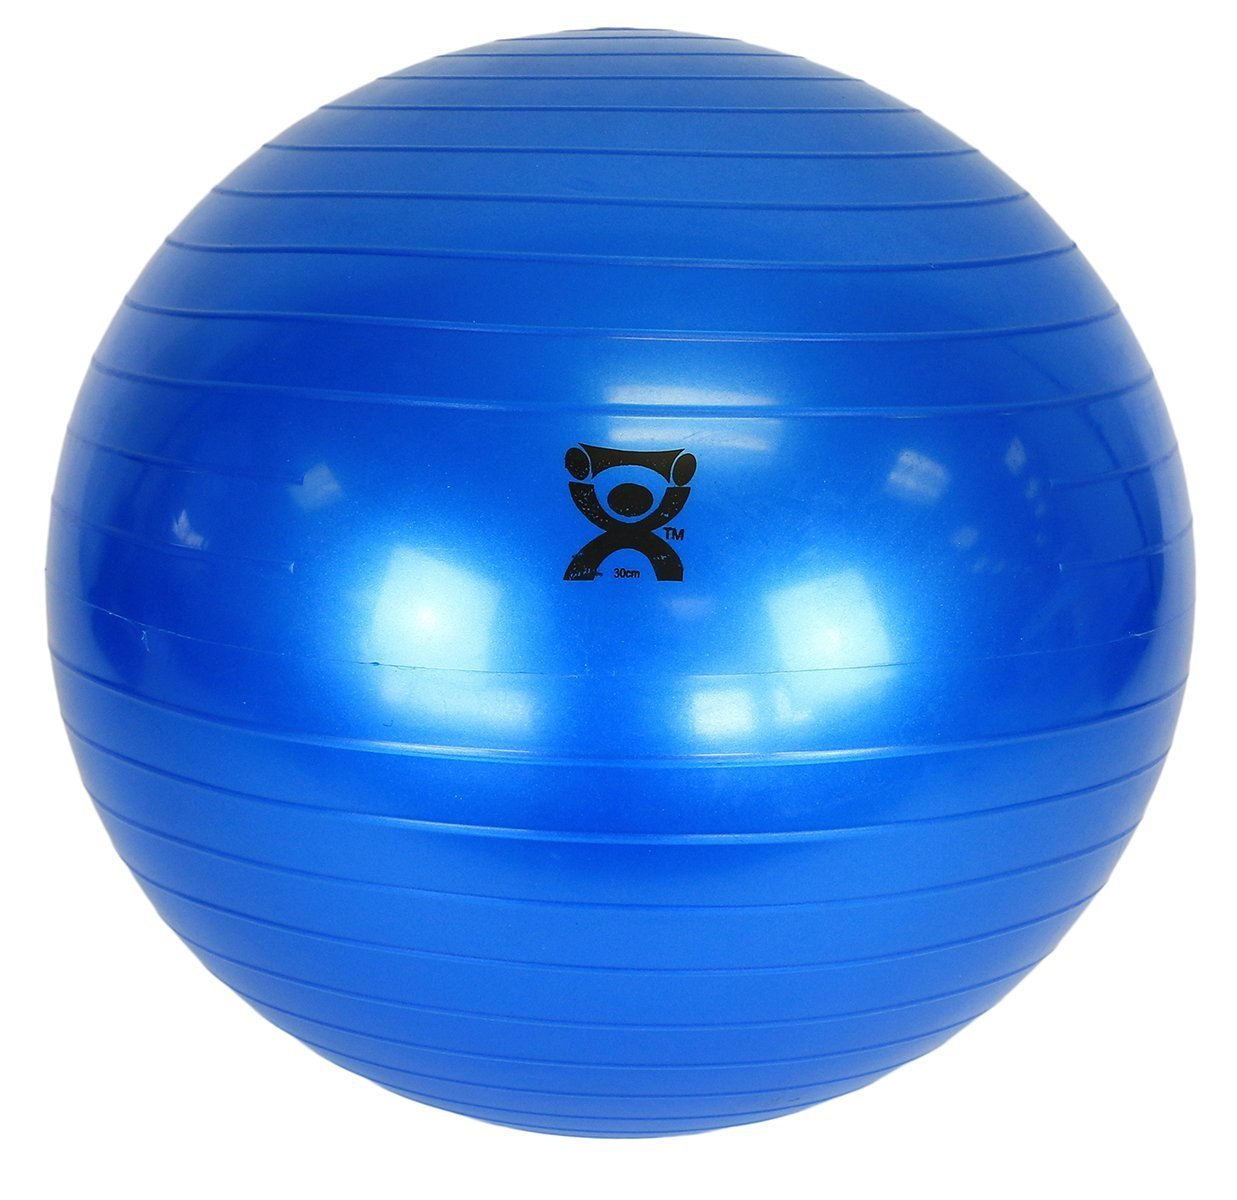 CanDo Inflatable Exercise Ball with Ribbed Non-slip Vinyl Surface in Blue Color (12 Inch)